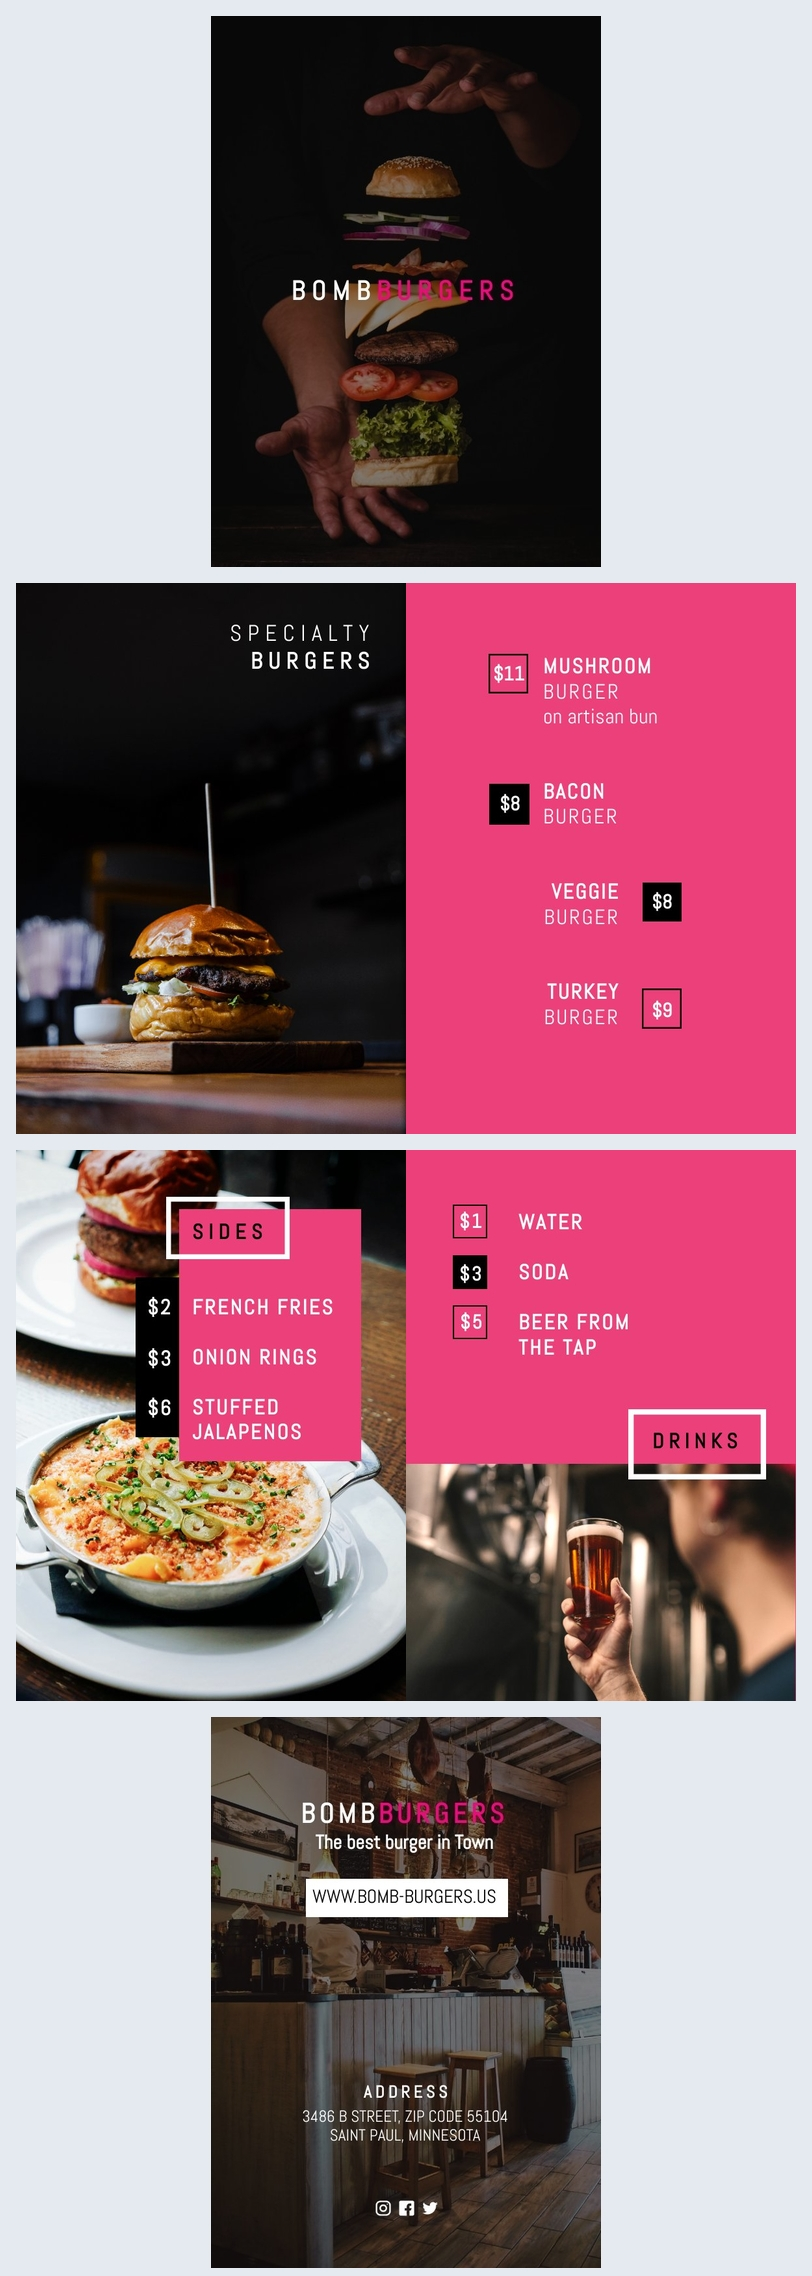 Burger Menu Design